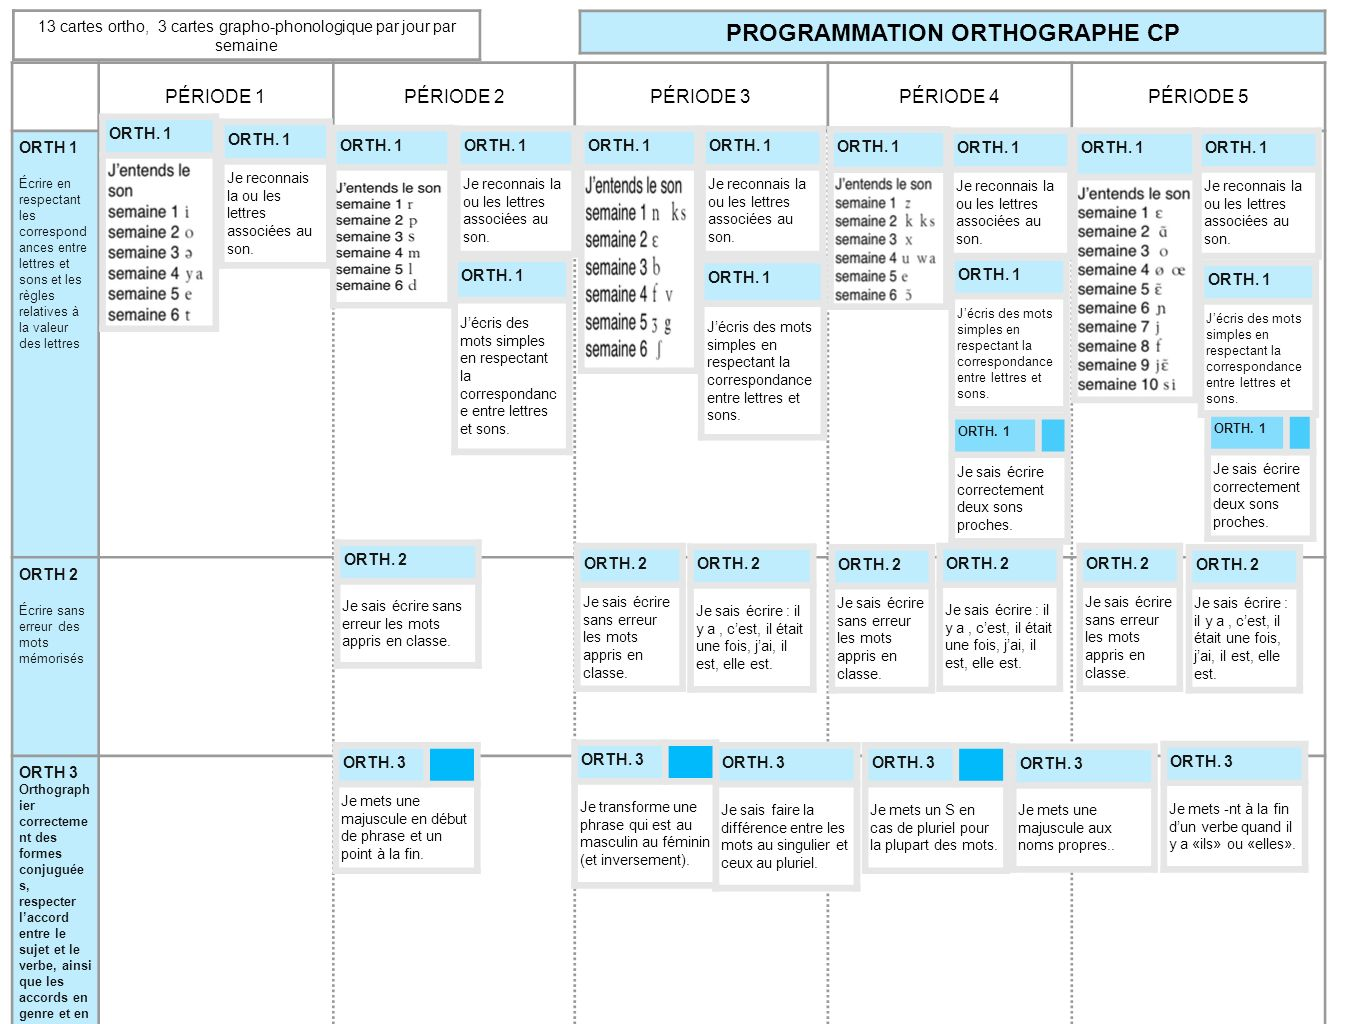 PROGRAMMATION ORTHOGRAPHE CP